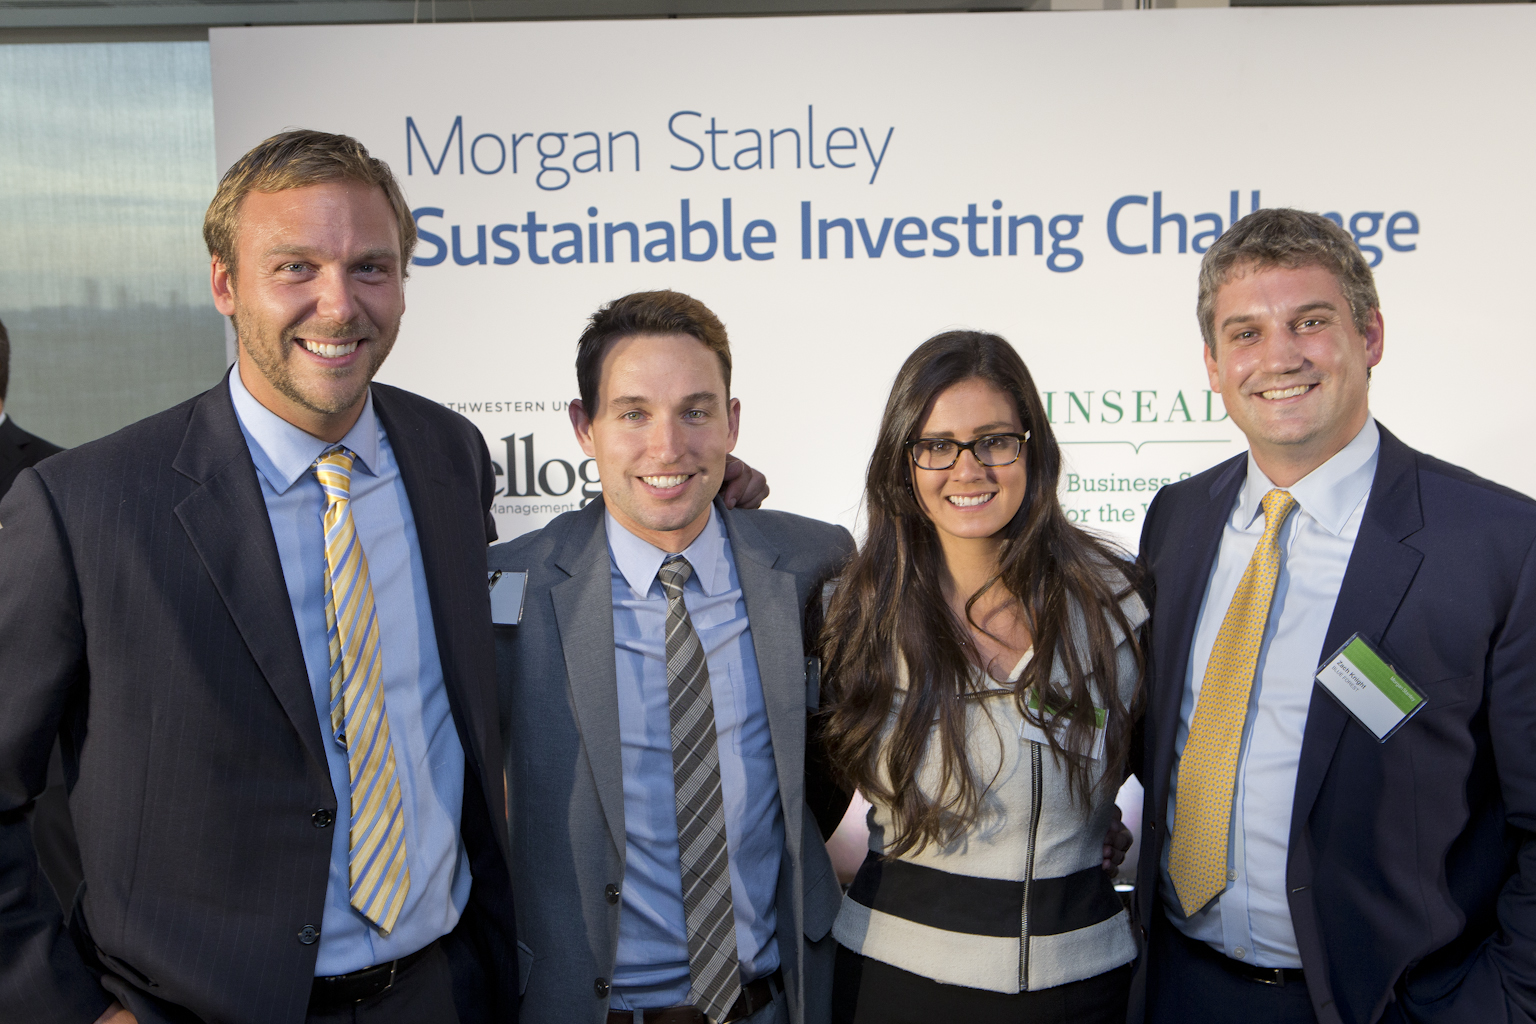 Blue Forest Conservation wins the 2015 Morgan Stanley Sustainable Investing Challenge